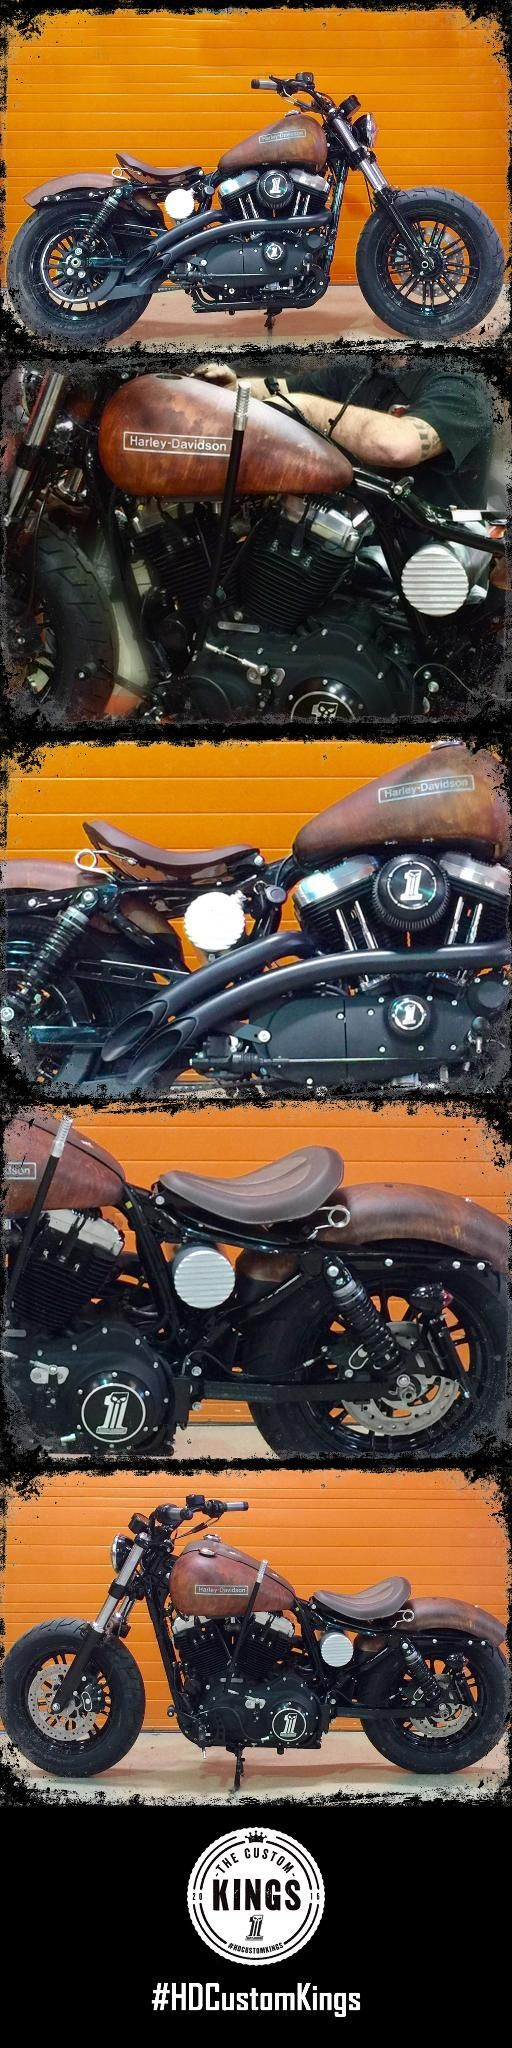 American Eagle Harley-Davidson/Buell built a bike you may dream about finding in a barn, except this is ready to start up and ride away. | Harley-Davidson